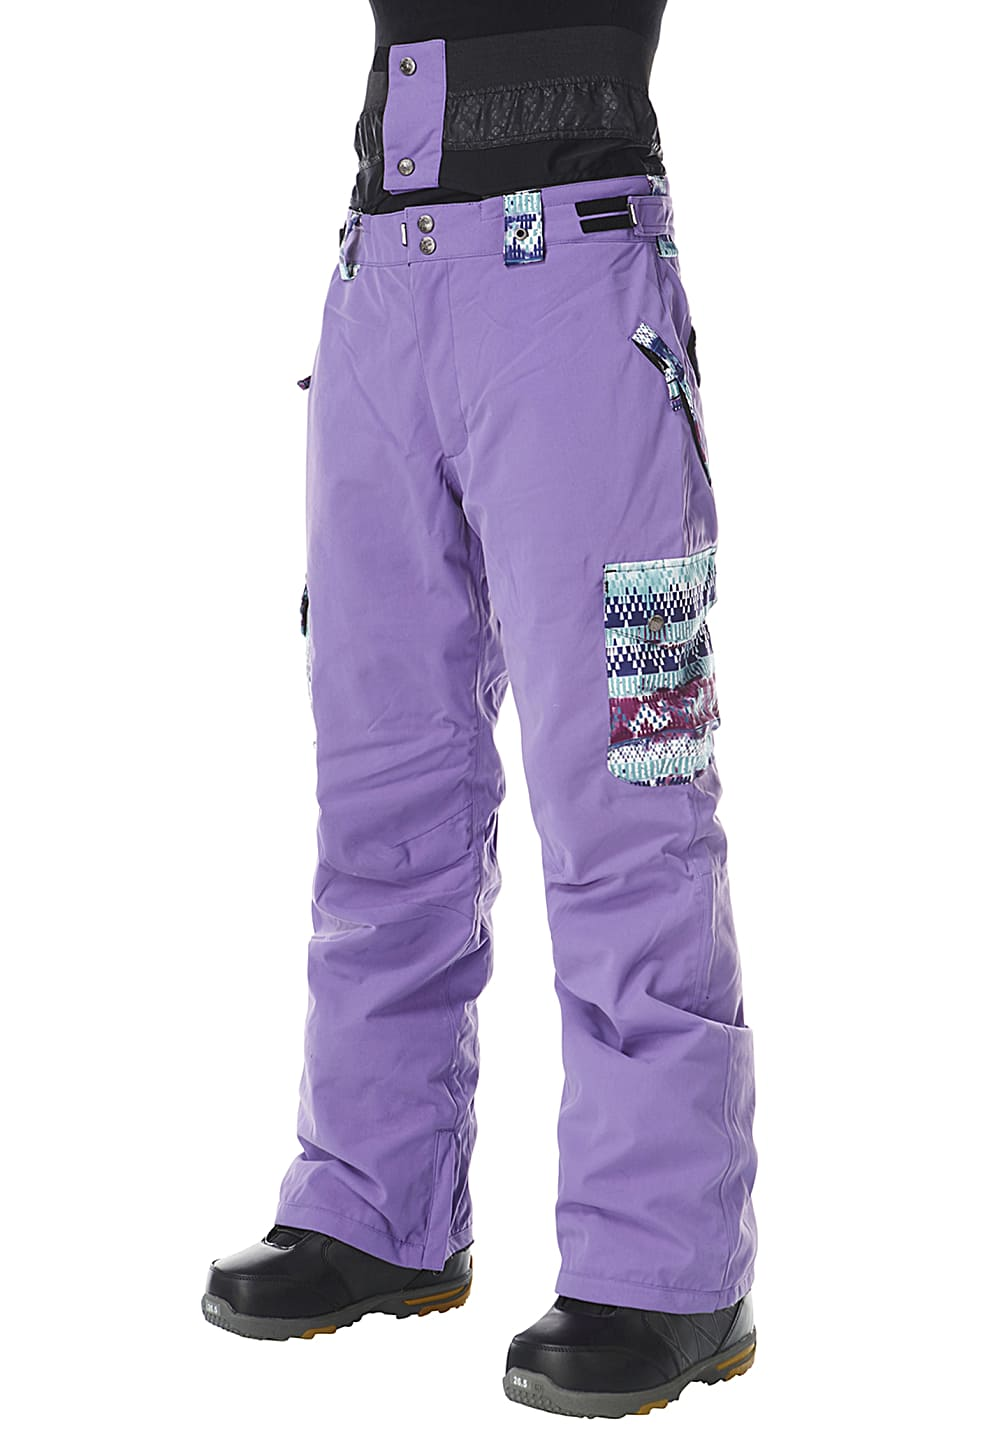 Hosen - Light Swing Evo Snowboardhose für Damen Lila  - Onlineshop Planet Sports